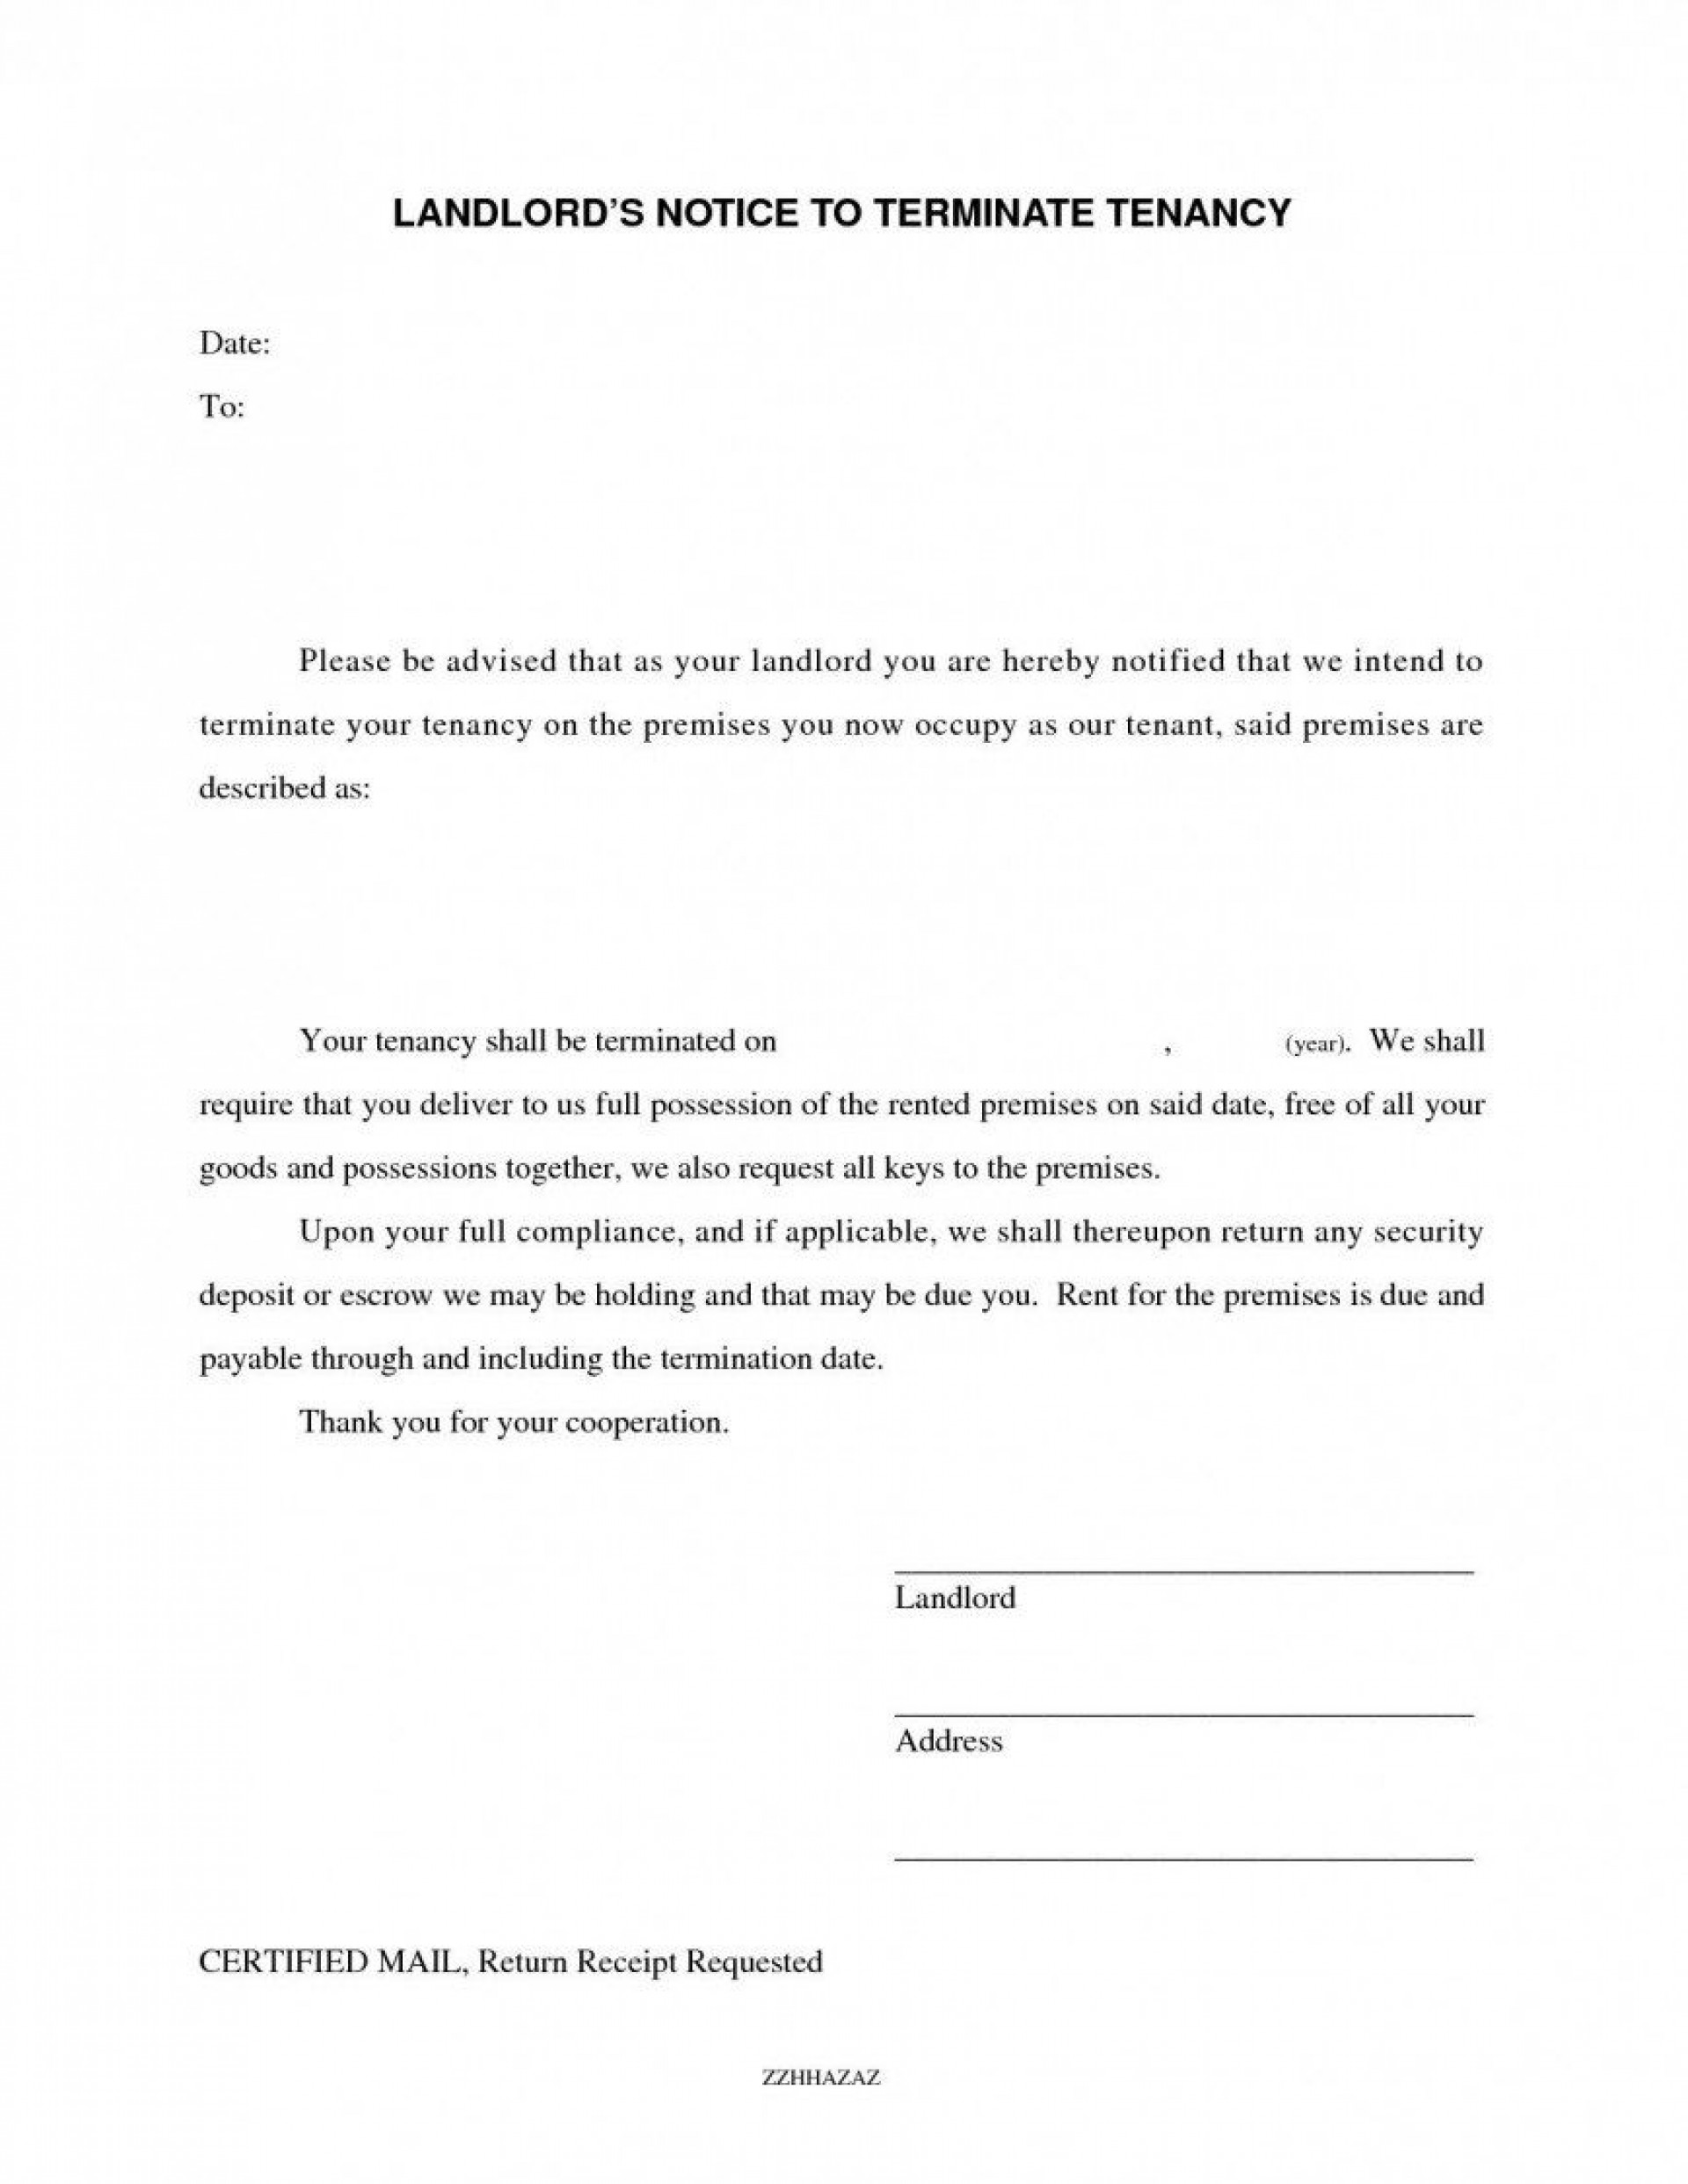 008 Frightening Template Letter To Terminate Rental Agreement Photo  End Tenancy For Landlord Ending1920